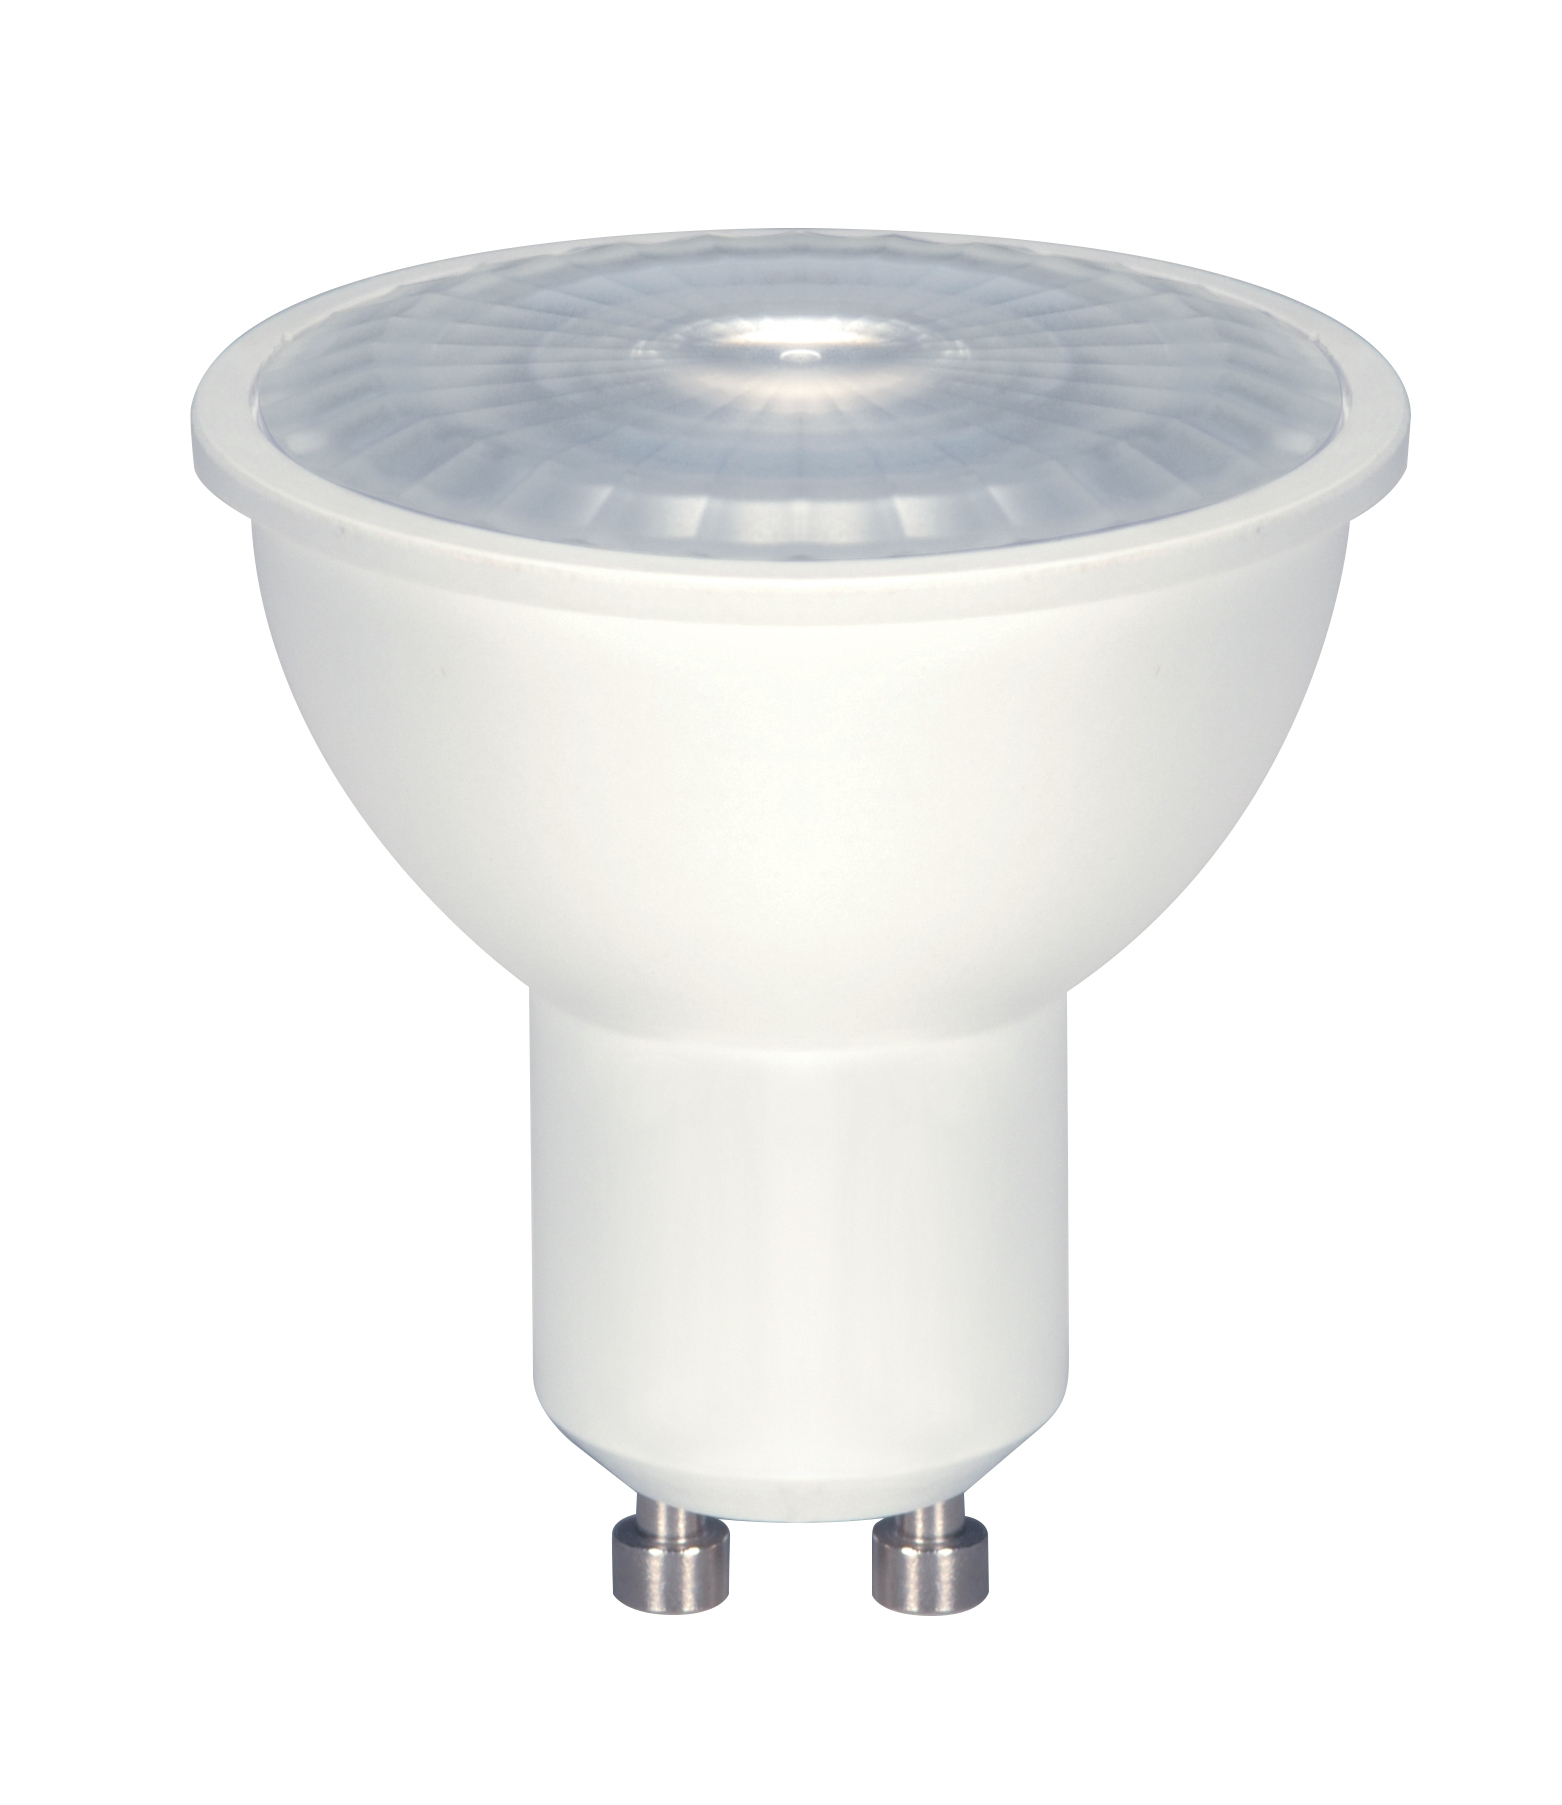 Satco,S9382,SATCO® S9382 Dimmable LED Reflector Lamp, 6.5 W, LED Lamp, GU10 Lamp Base, MR16 Shape, 500 Lumens Initial